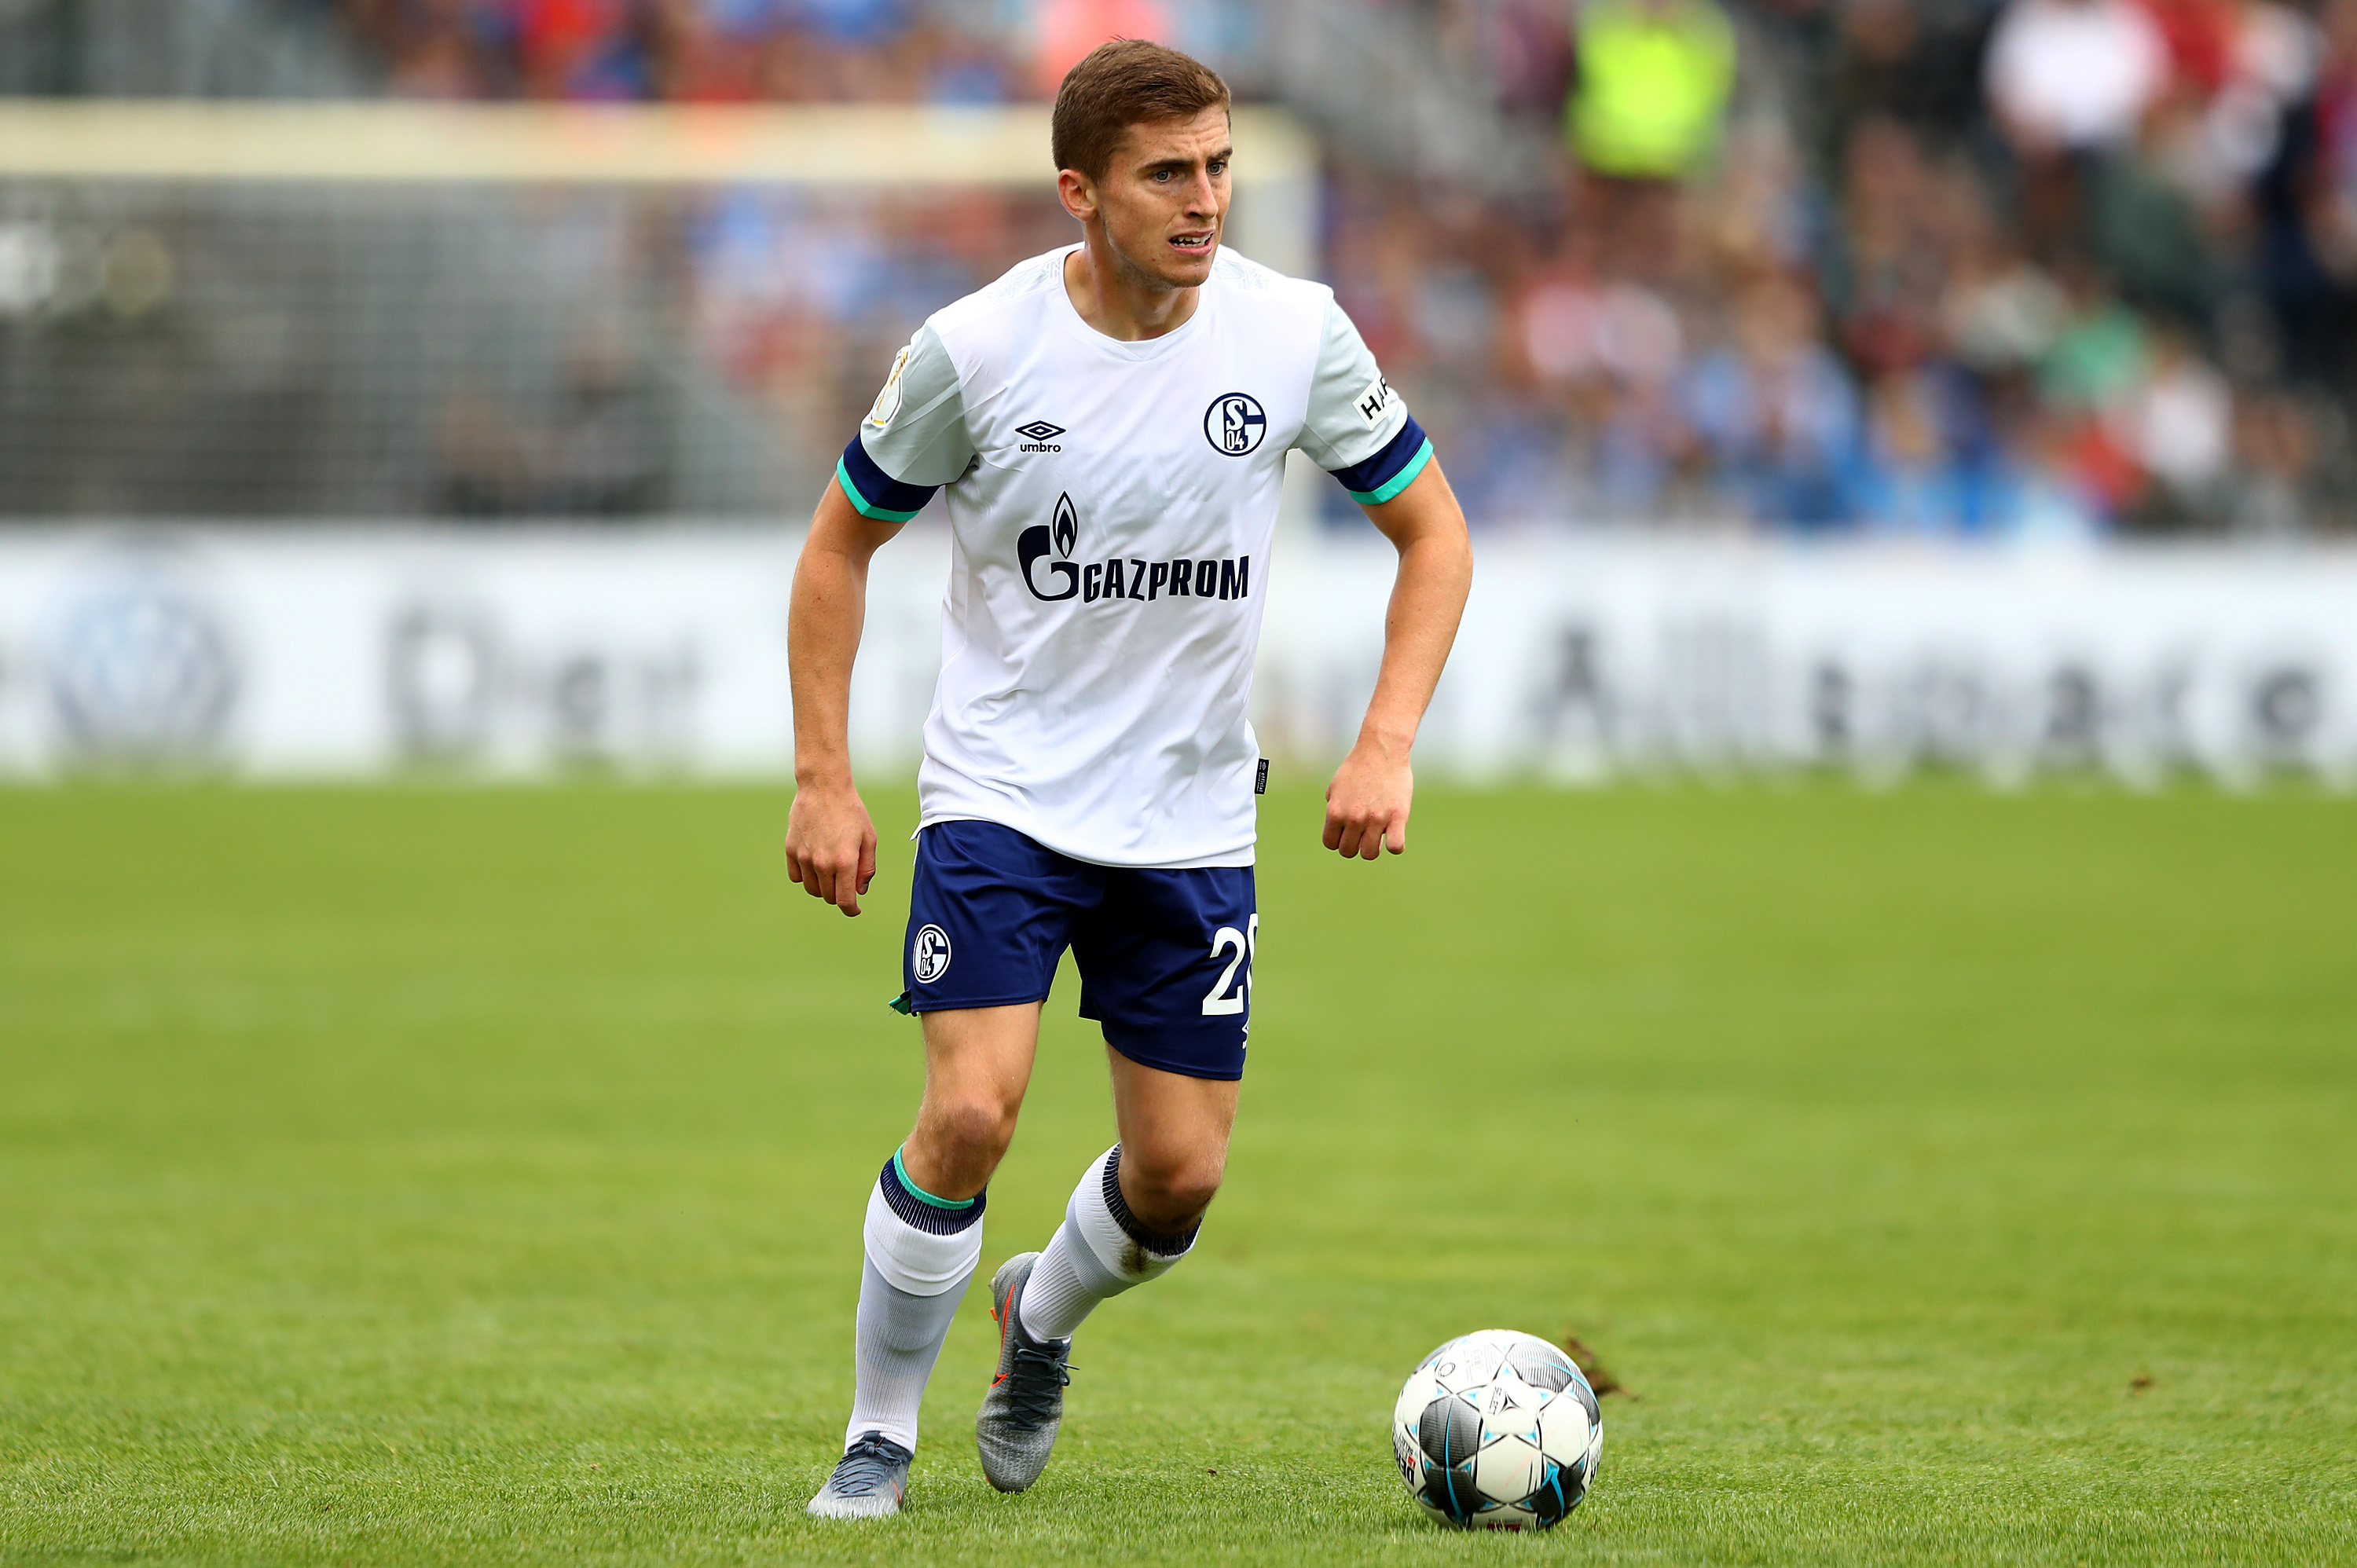 Kenny impressed on loan at Schalke and Celtic (Photo by Martin Rose/Bongarts/Getty Images)